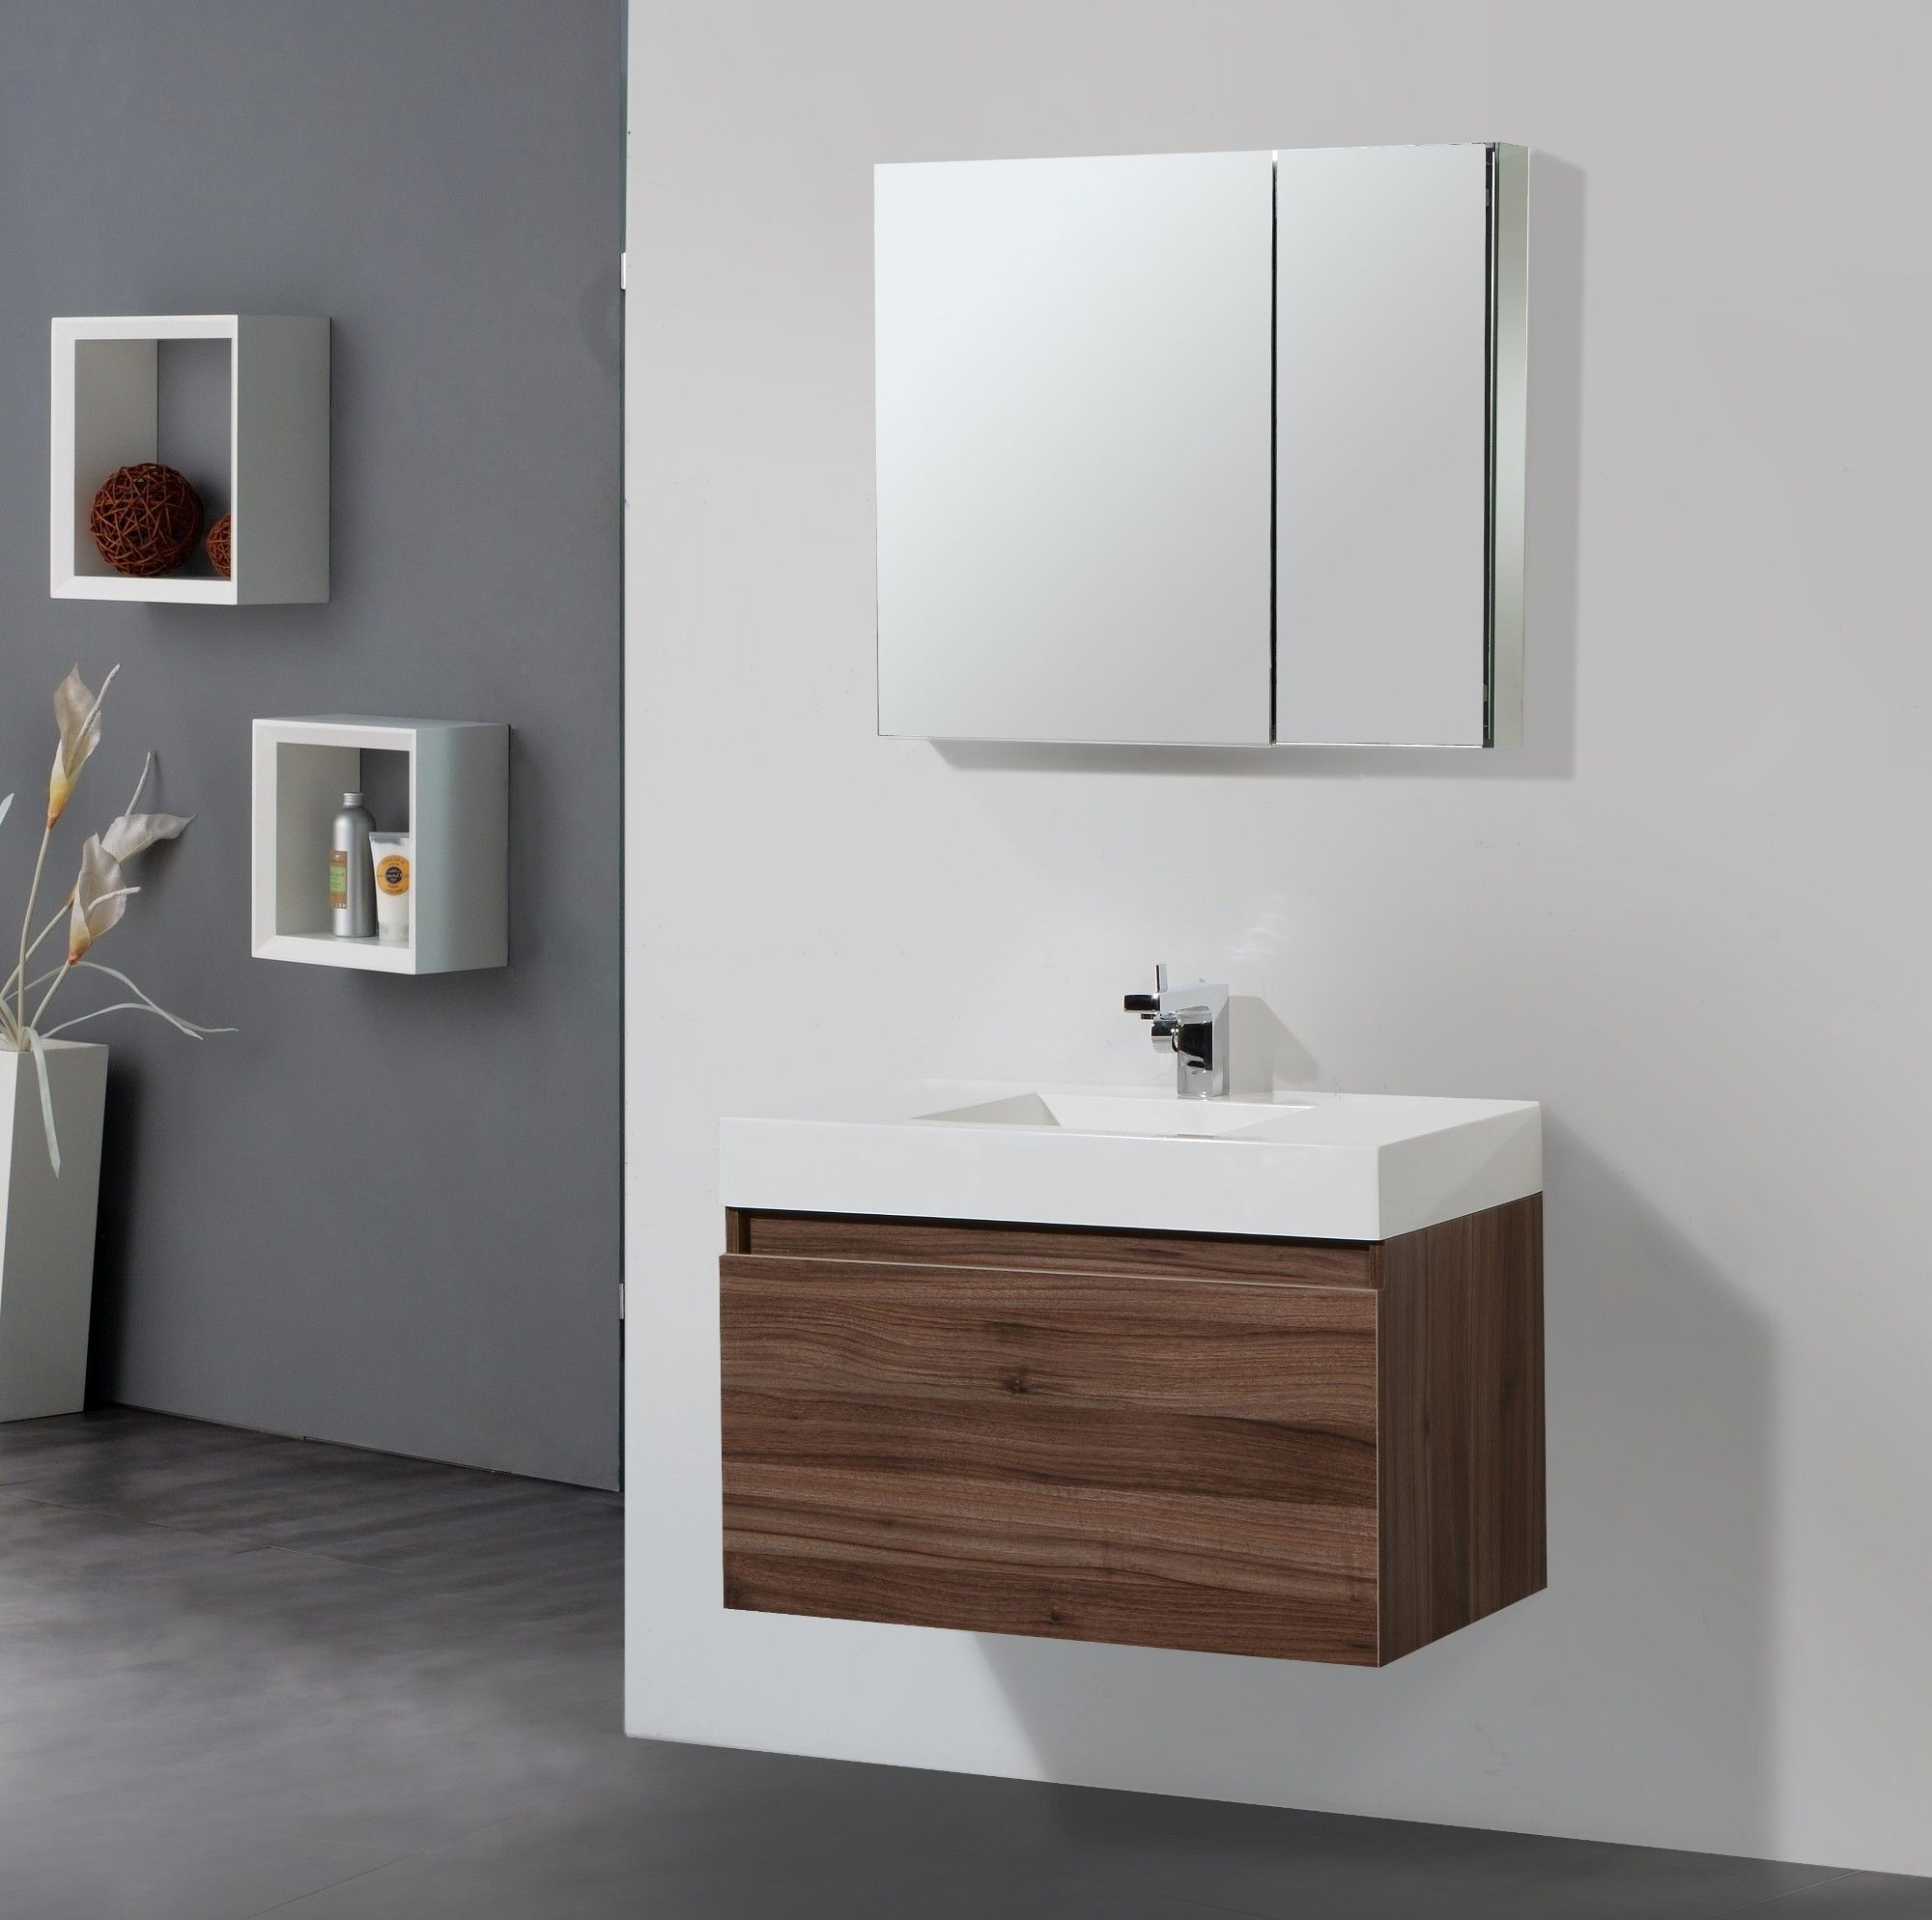 Solid wood bathroom vanities and modern floating brown - Narrow bathroom sinks and vanities ...